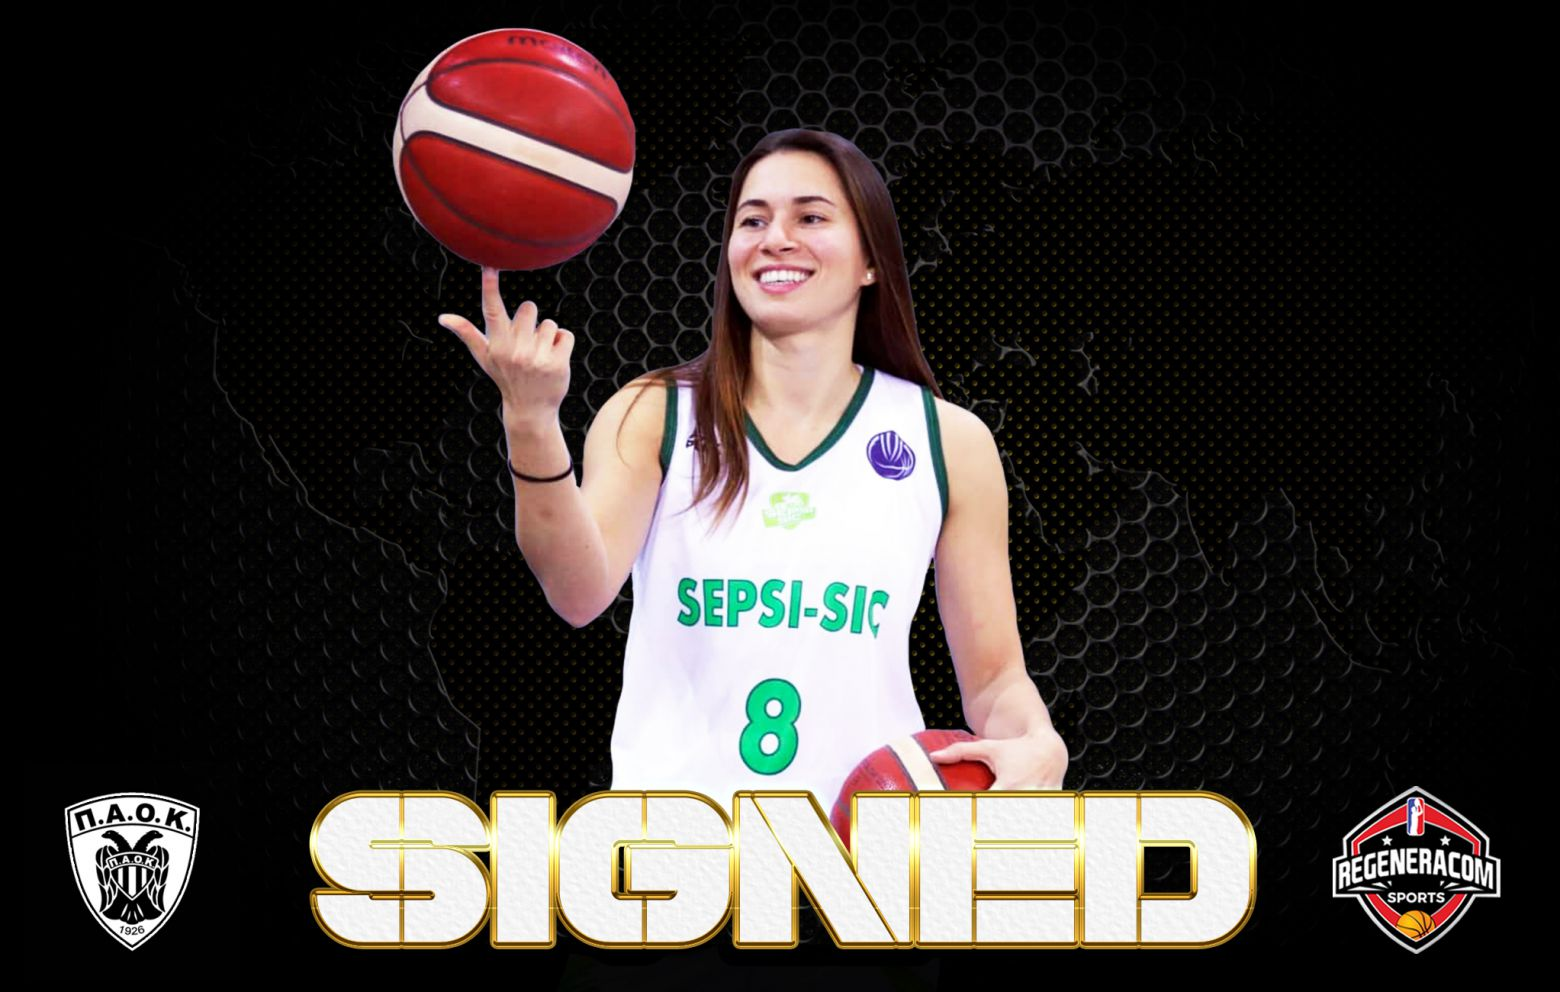 PINELOPI PAVLOPOULOU has signed with PAOK for the 2021/22 season